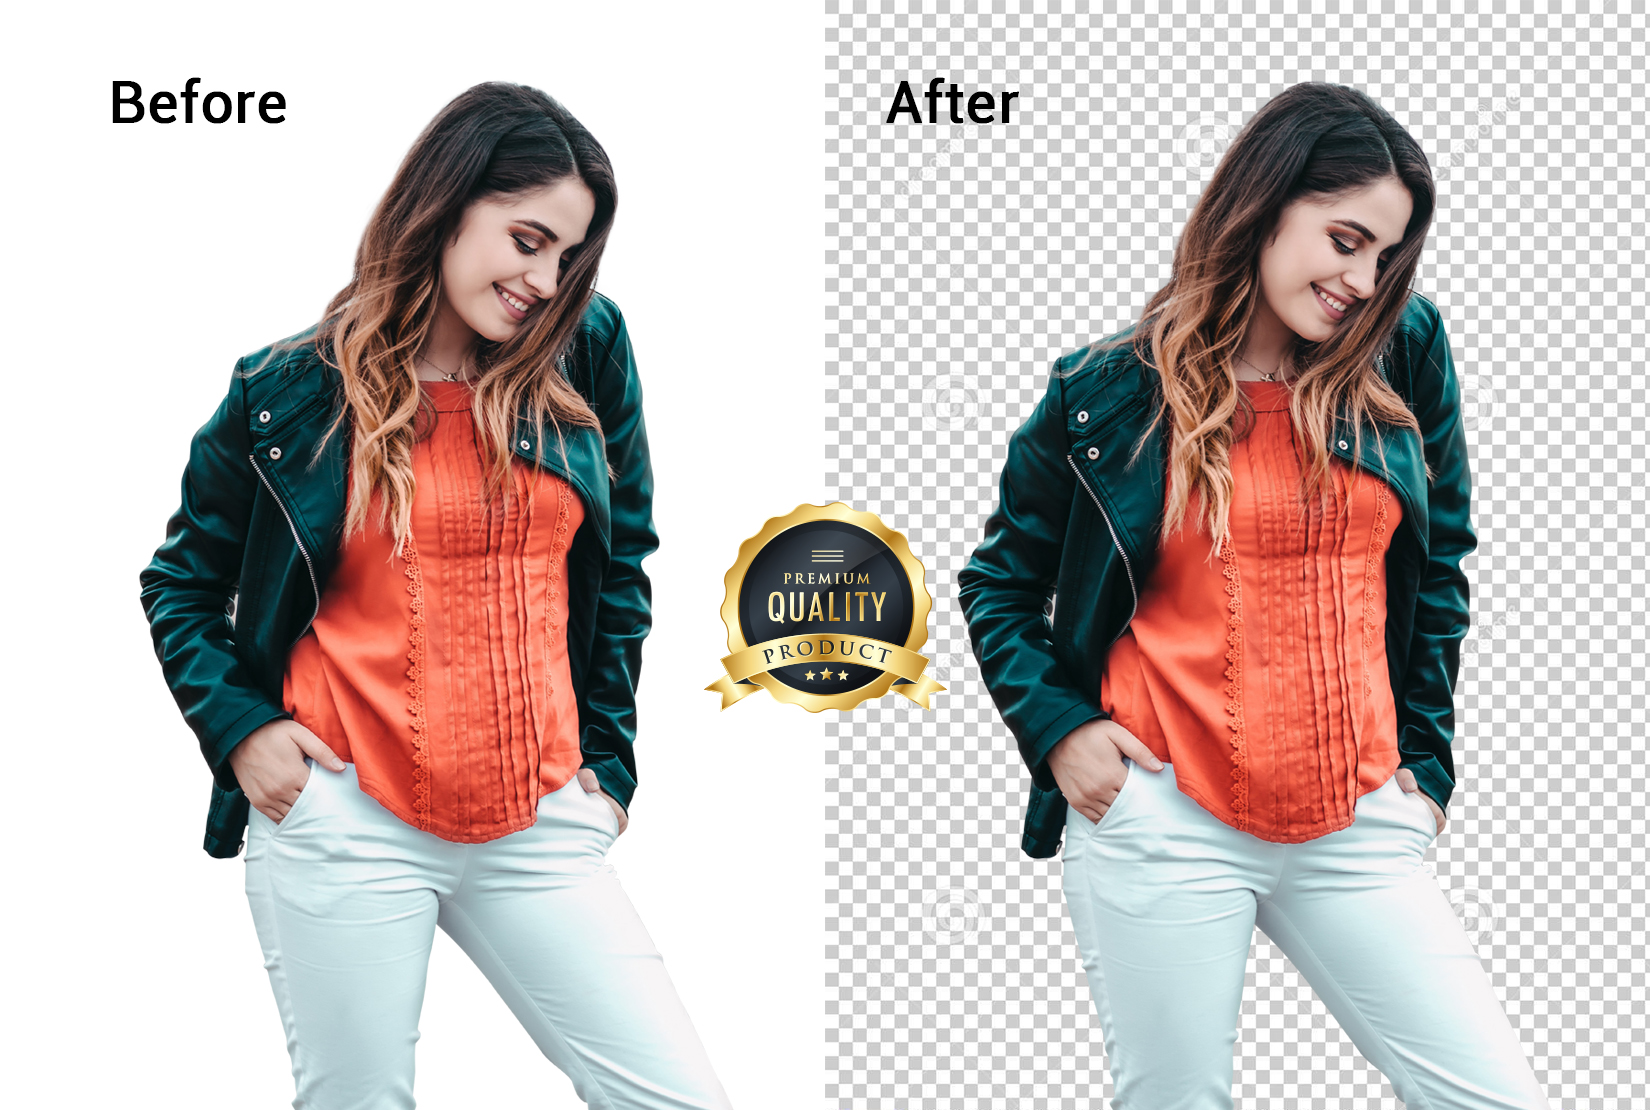 I will provide Background Removal service in 24 hours